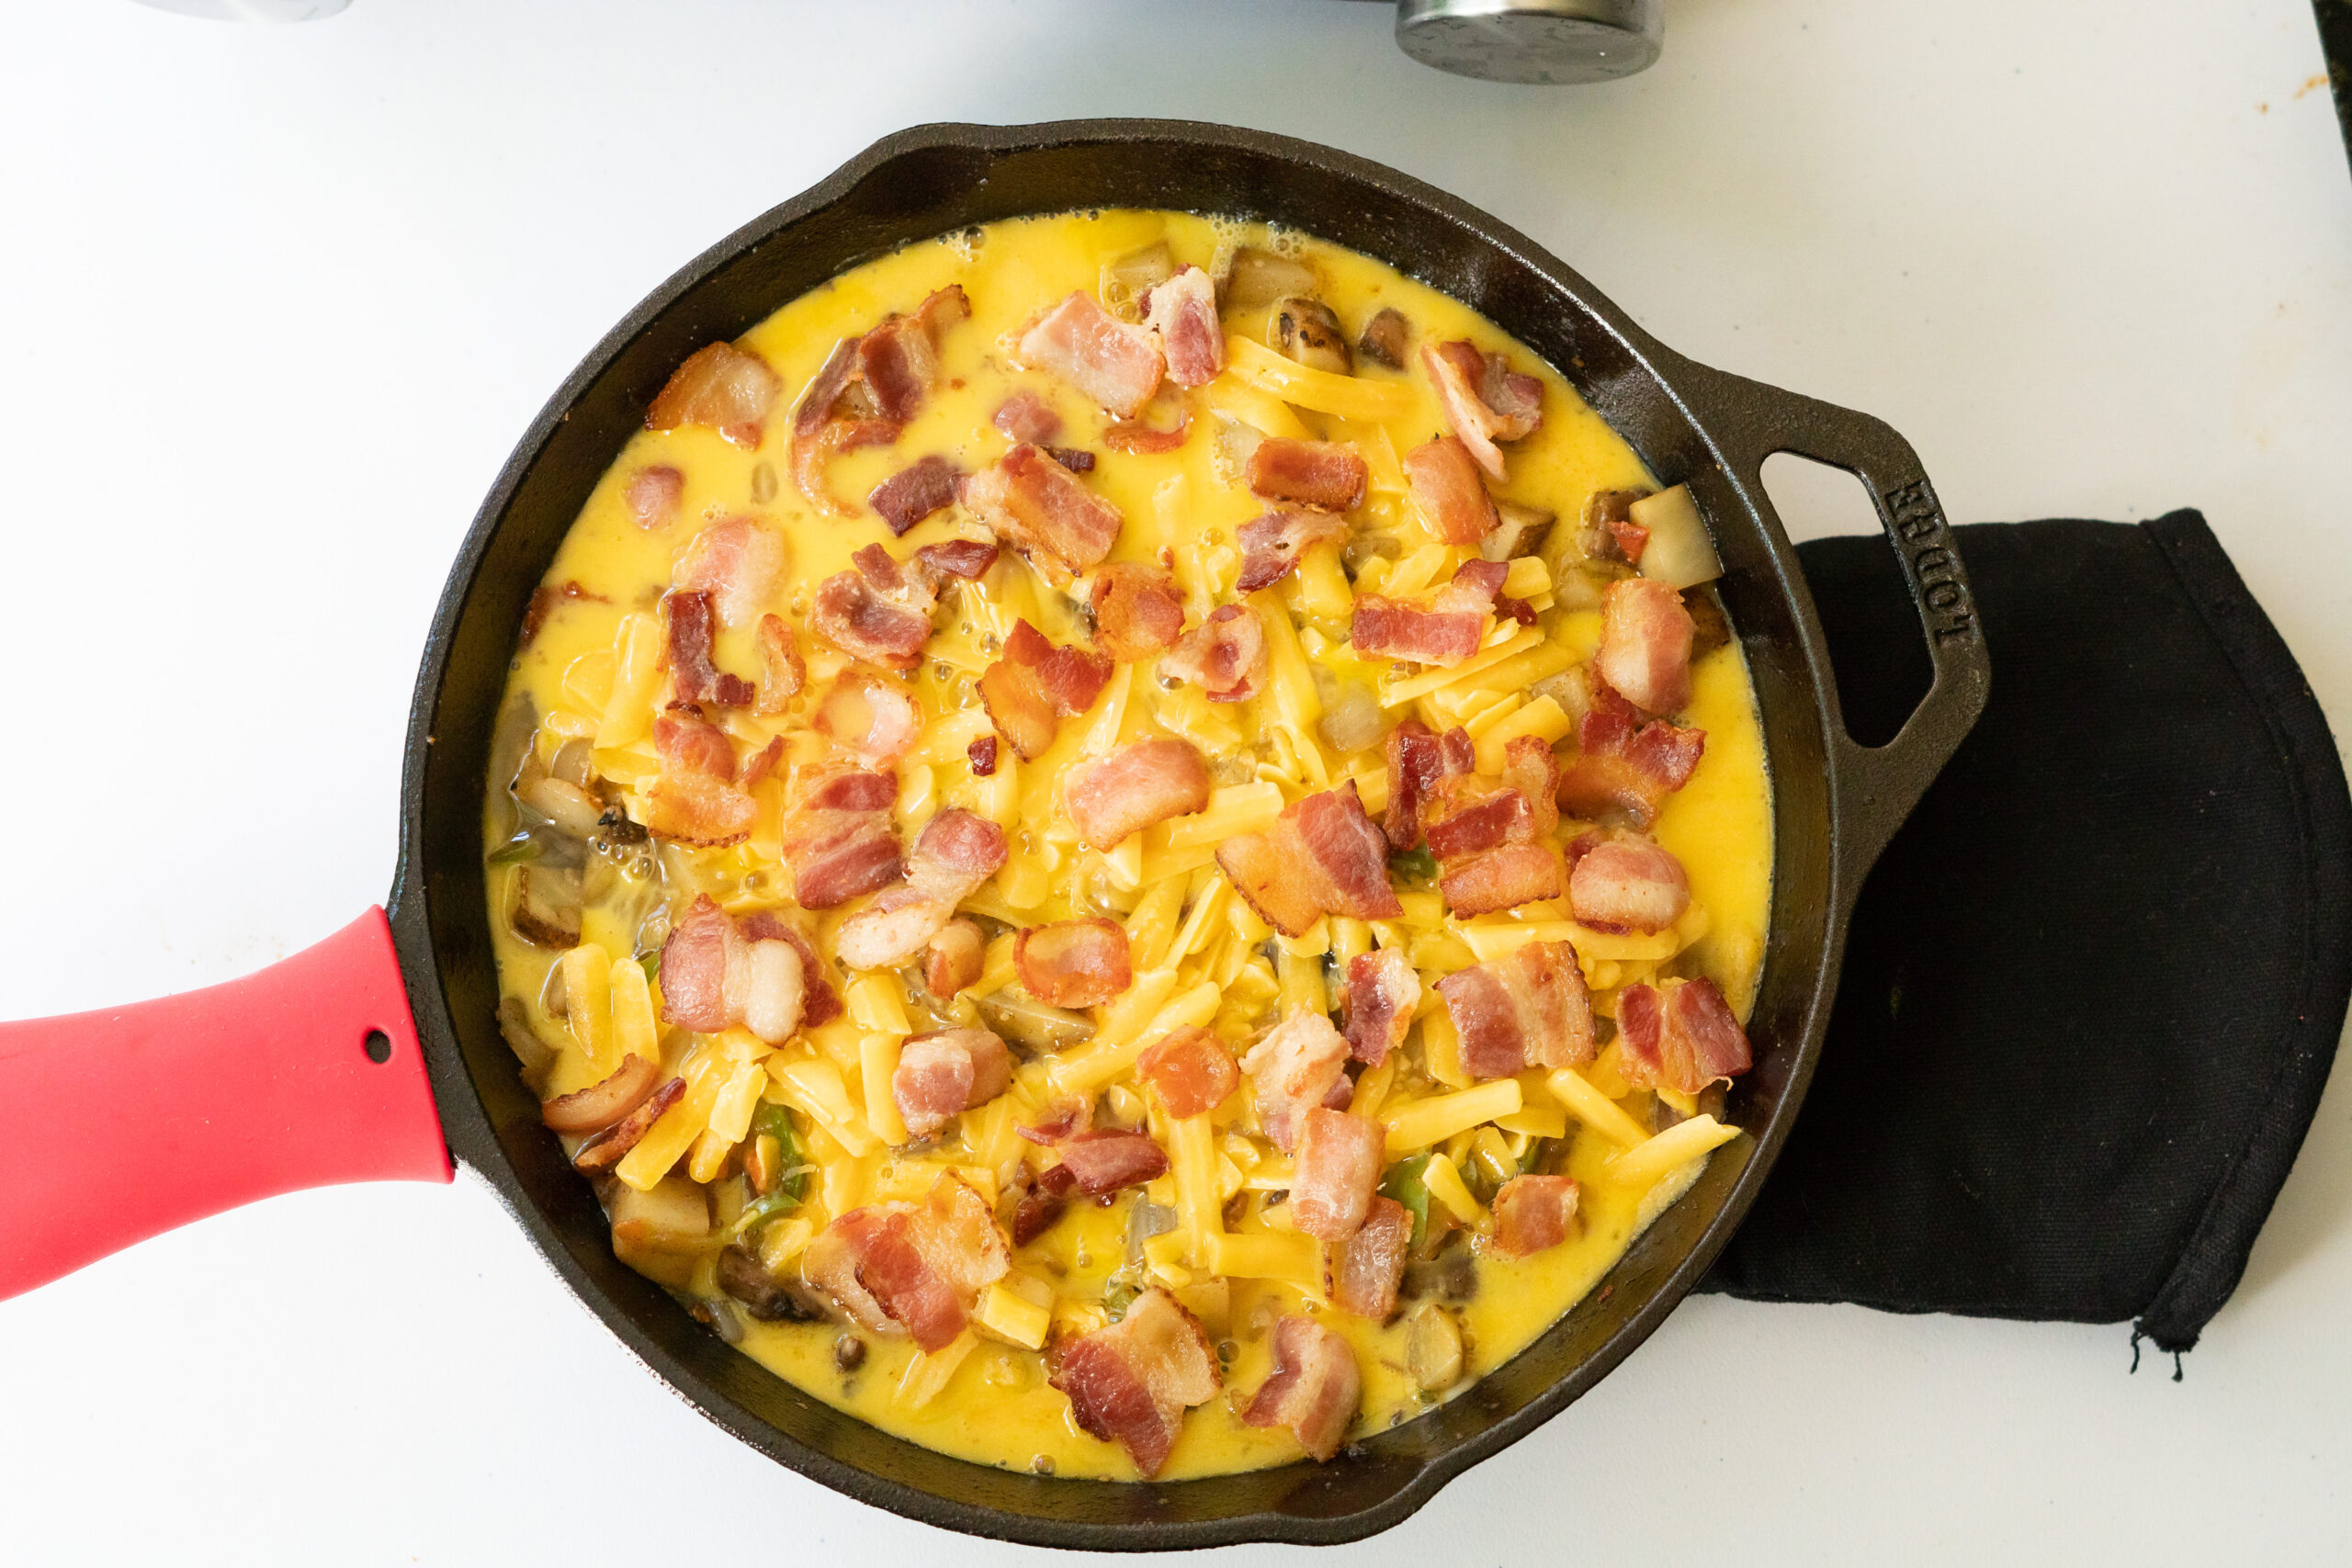 Southwest breakfast skillet ready for baking with vegetables, cheese, egg, and bacon layered in the skillet.